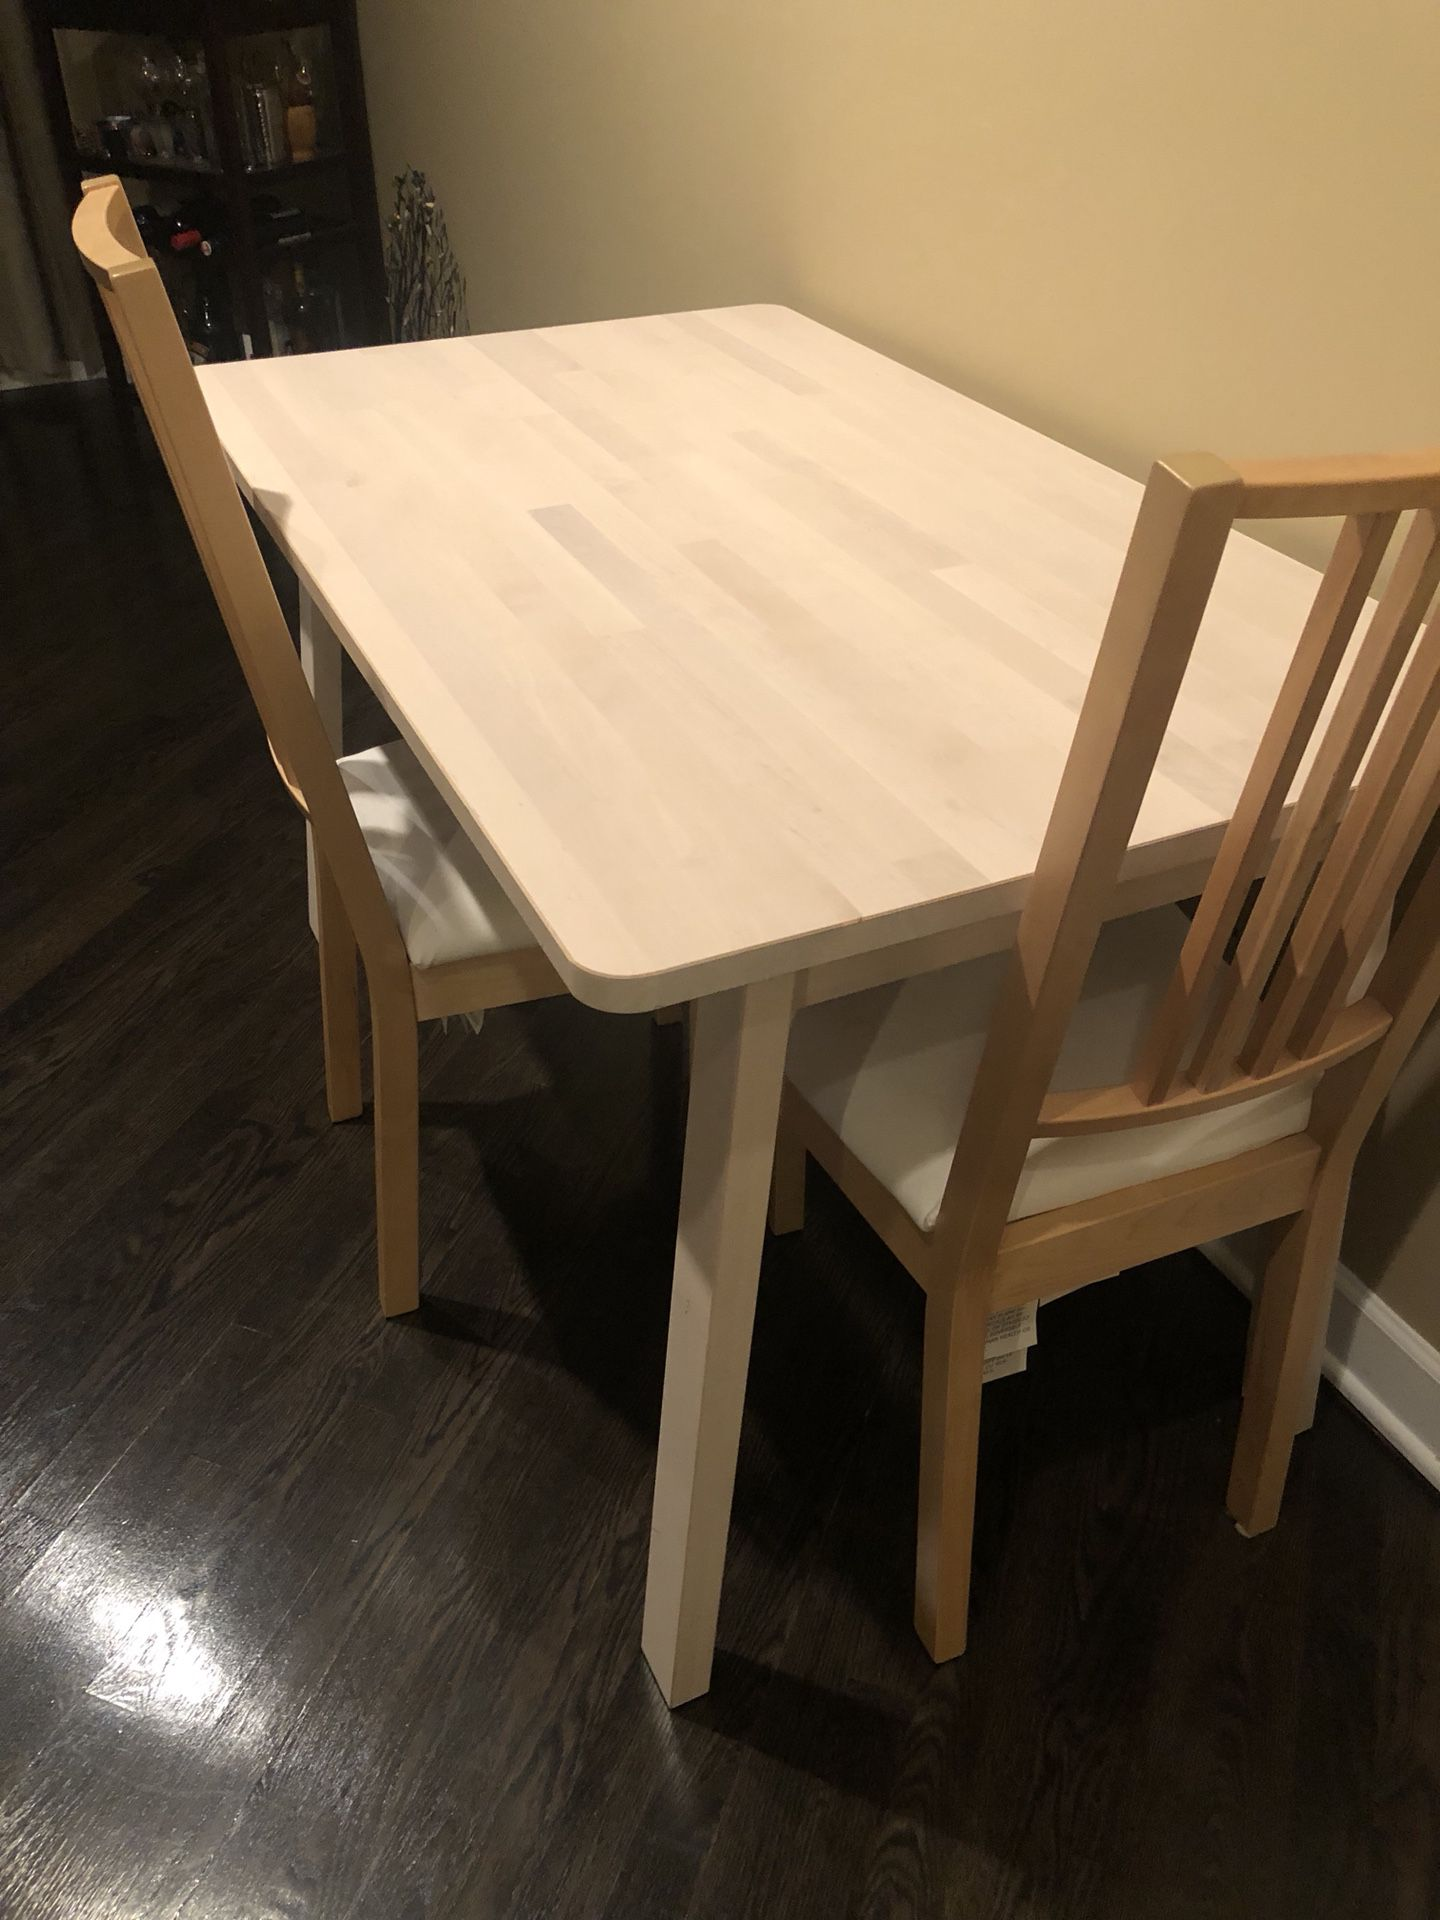 Norraker Dining Table And 2 Chairs For, Used Dining Room Chairs Chicago